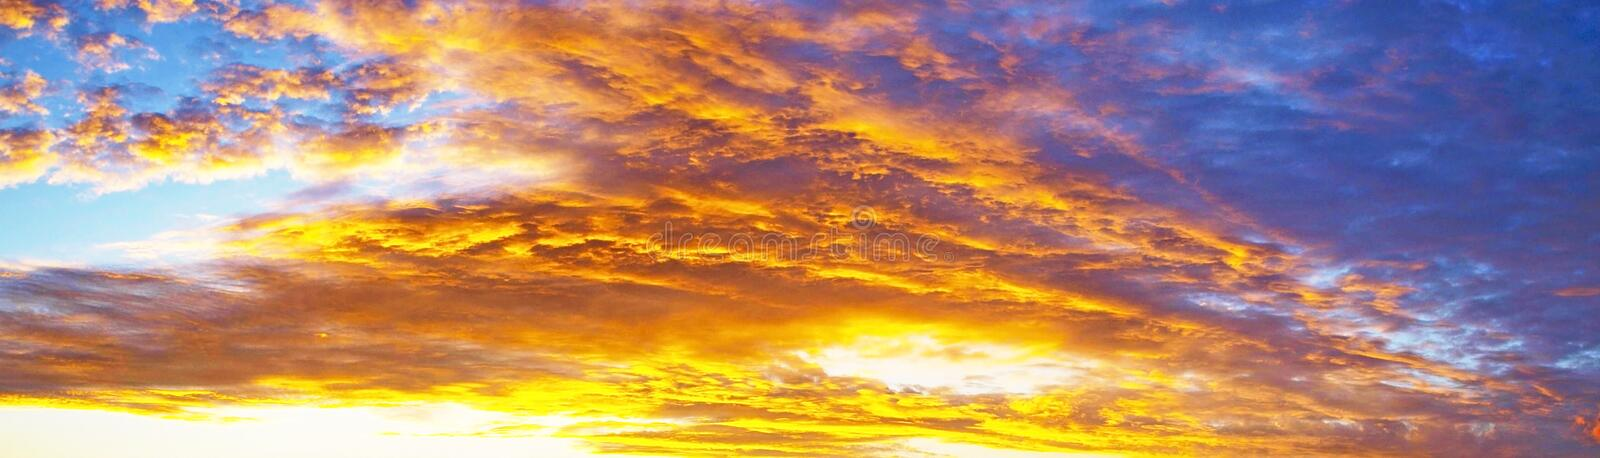 Red colored cirrus cloud, background sunset seascape. Cirrus cloud background. Sunset seascape photo art. Yellow and orange coloured picturesque cirrus cloudy royalty free stock photo